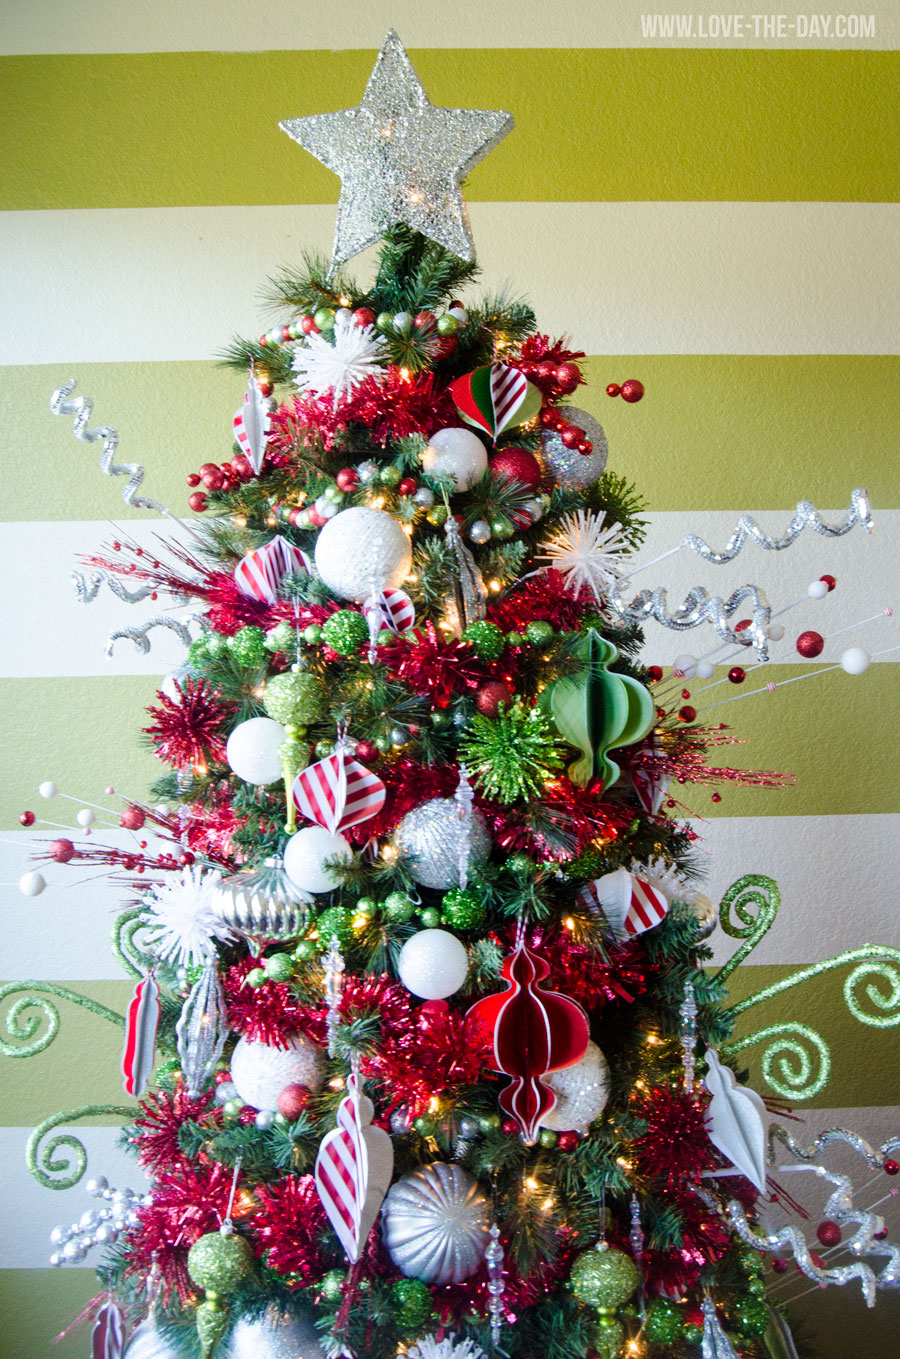 whimsical-christmas-tree-decorating-idea